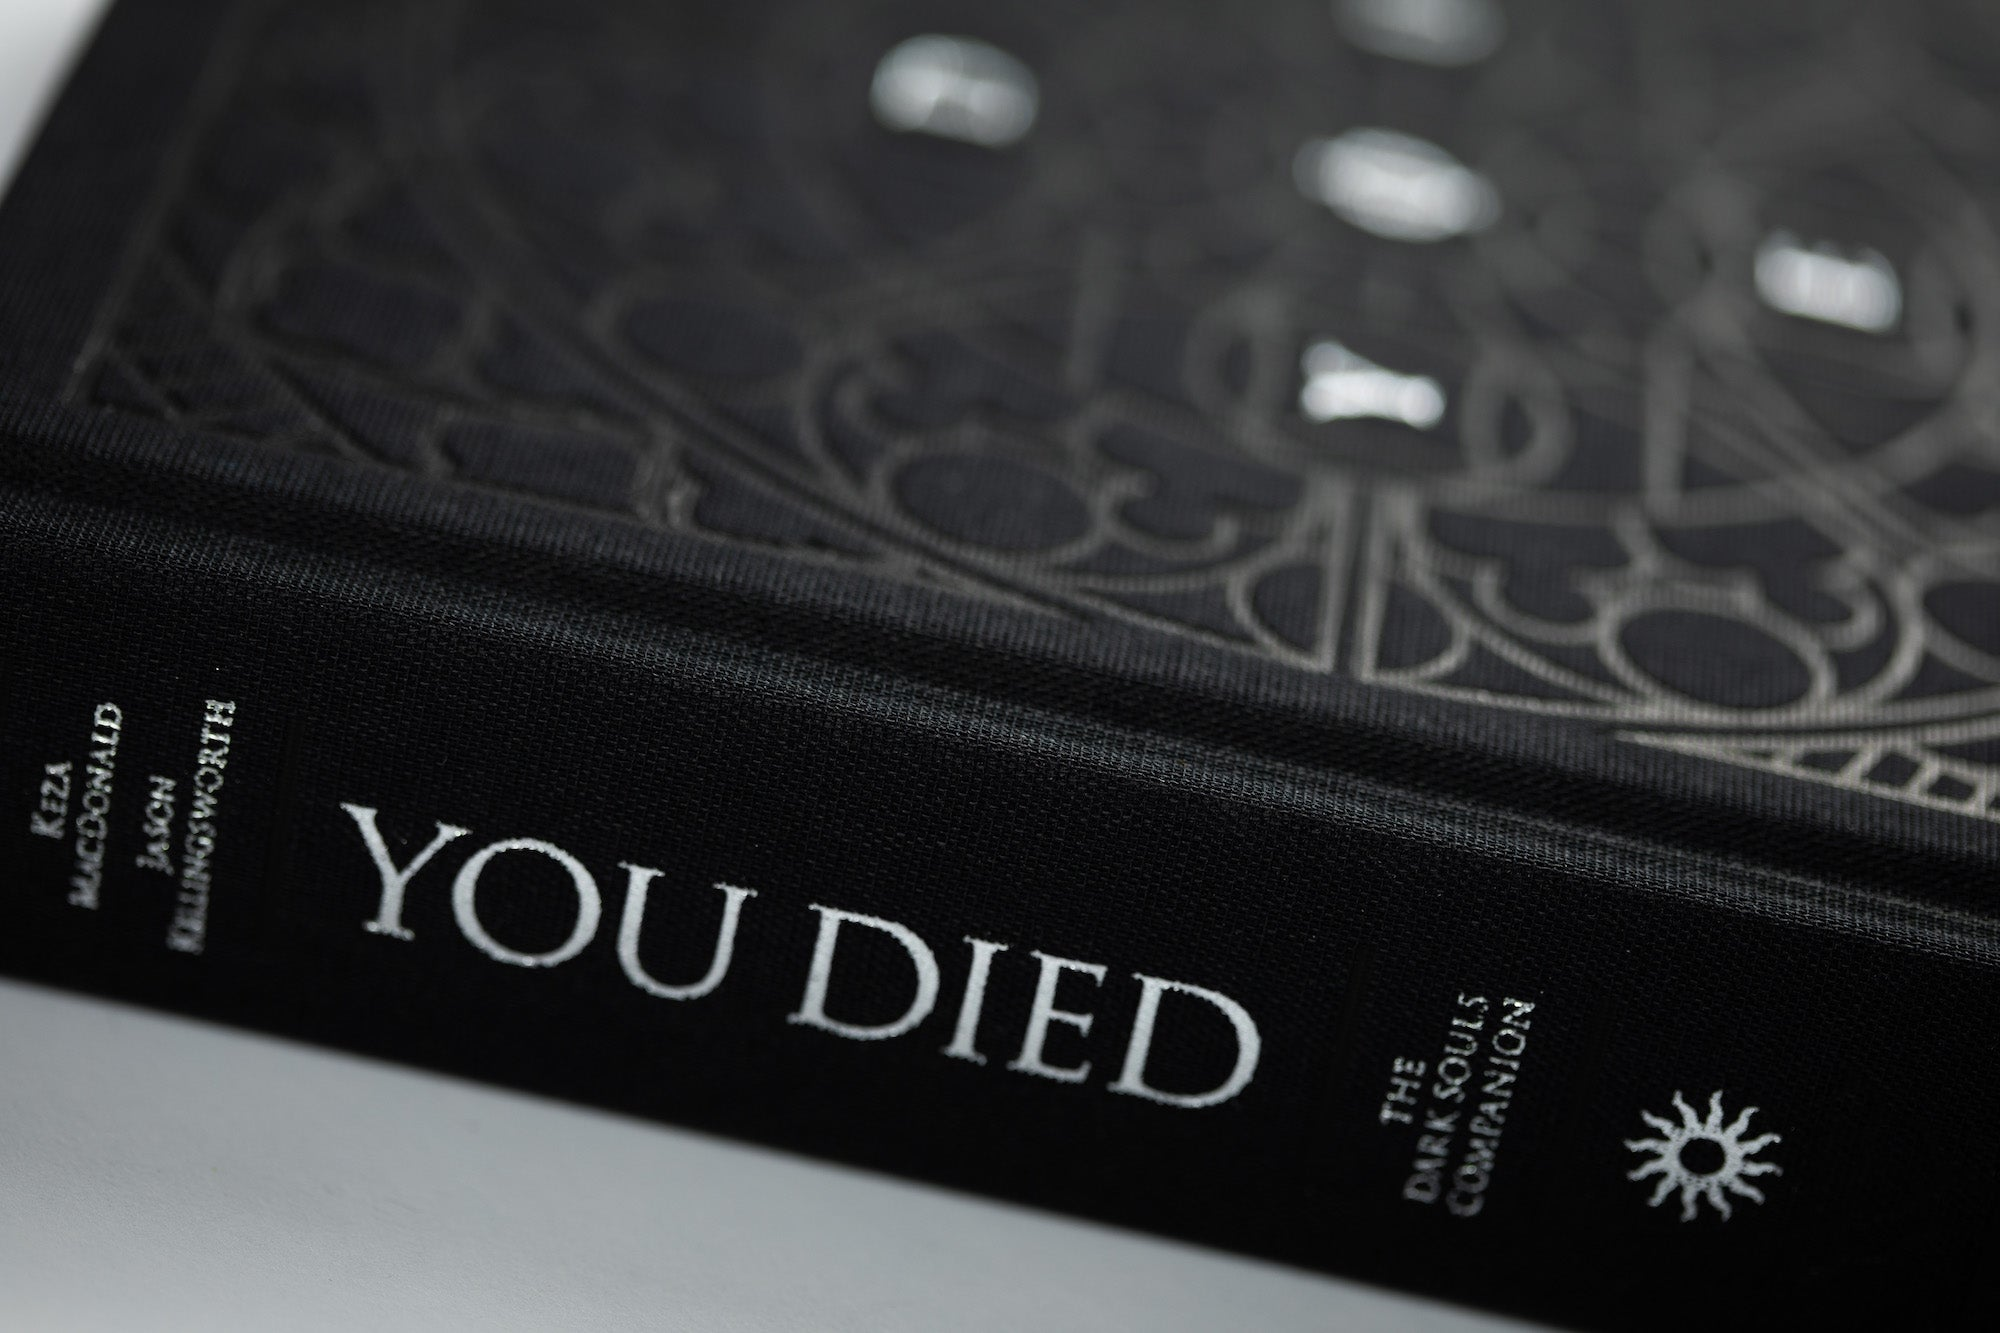 You Died deluxe hardcover (black cloth edition)